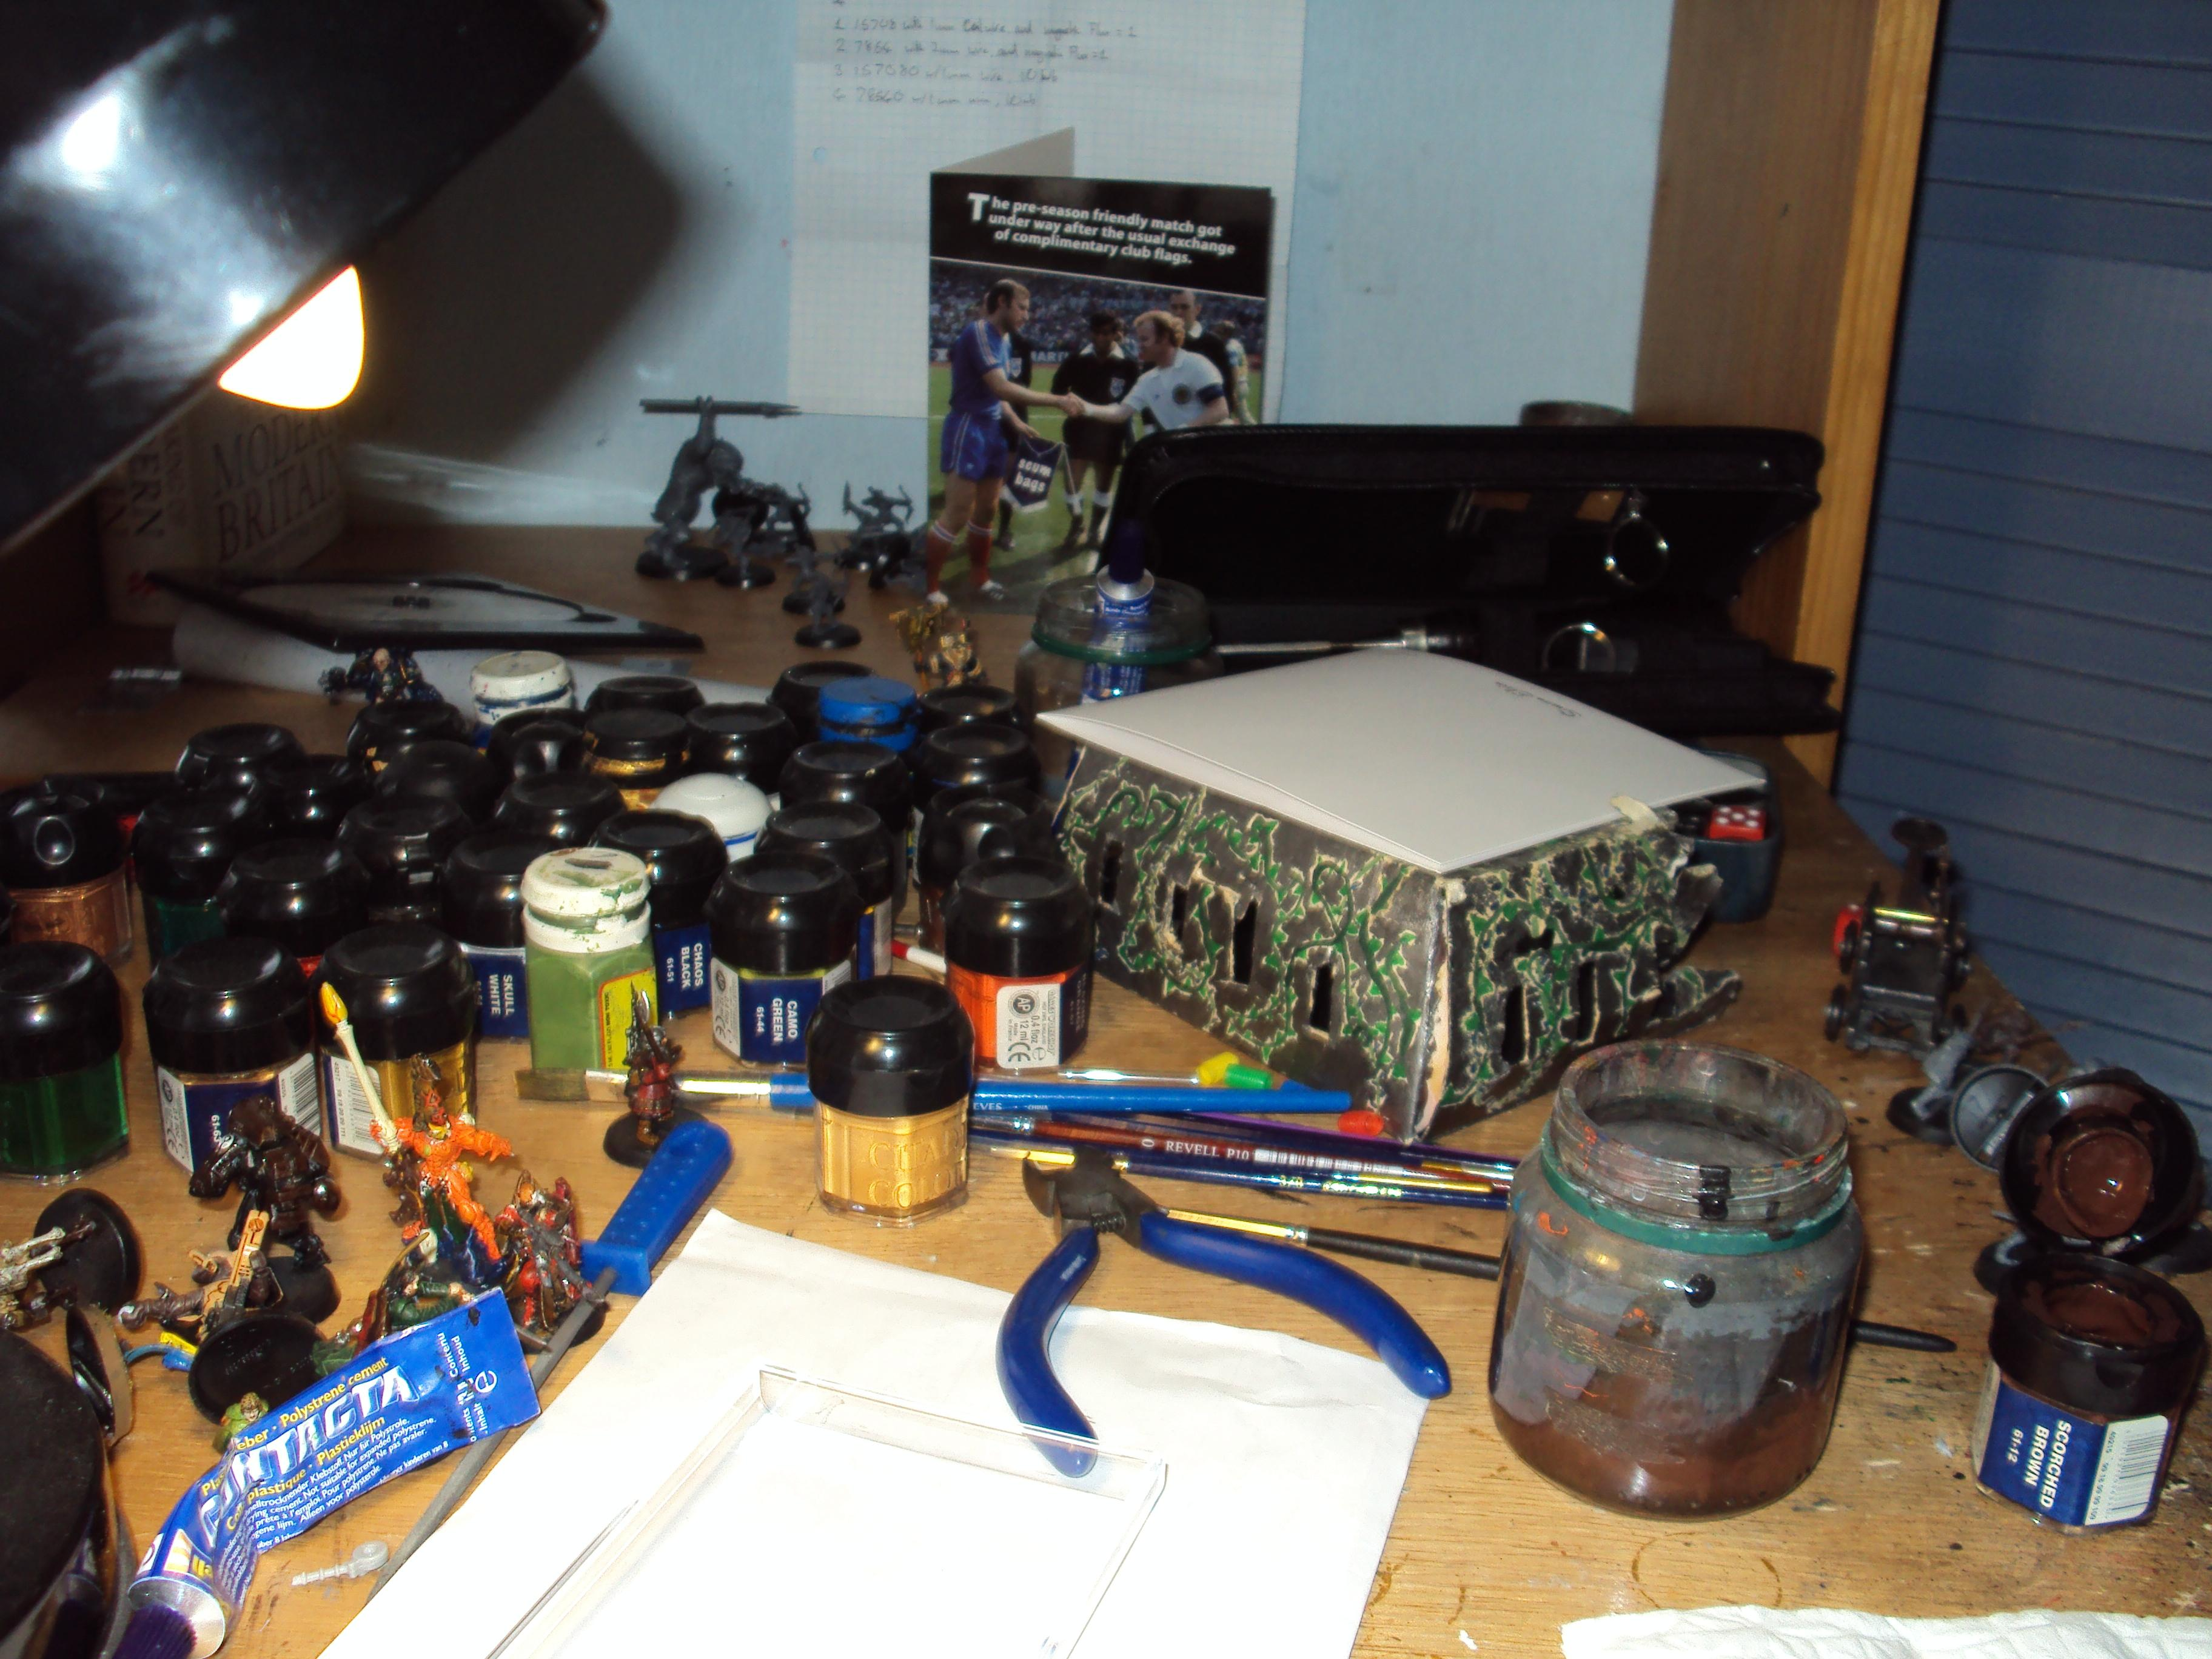 Hobby Area, Cluttered I know, but it serves its purpose